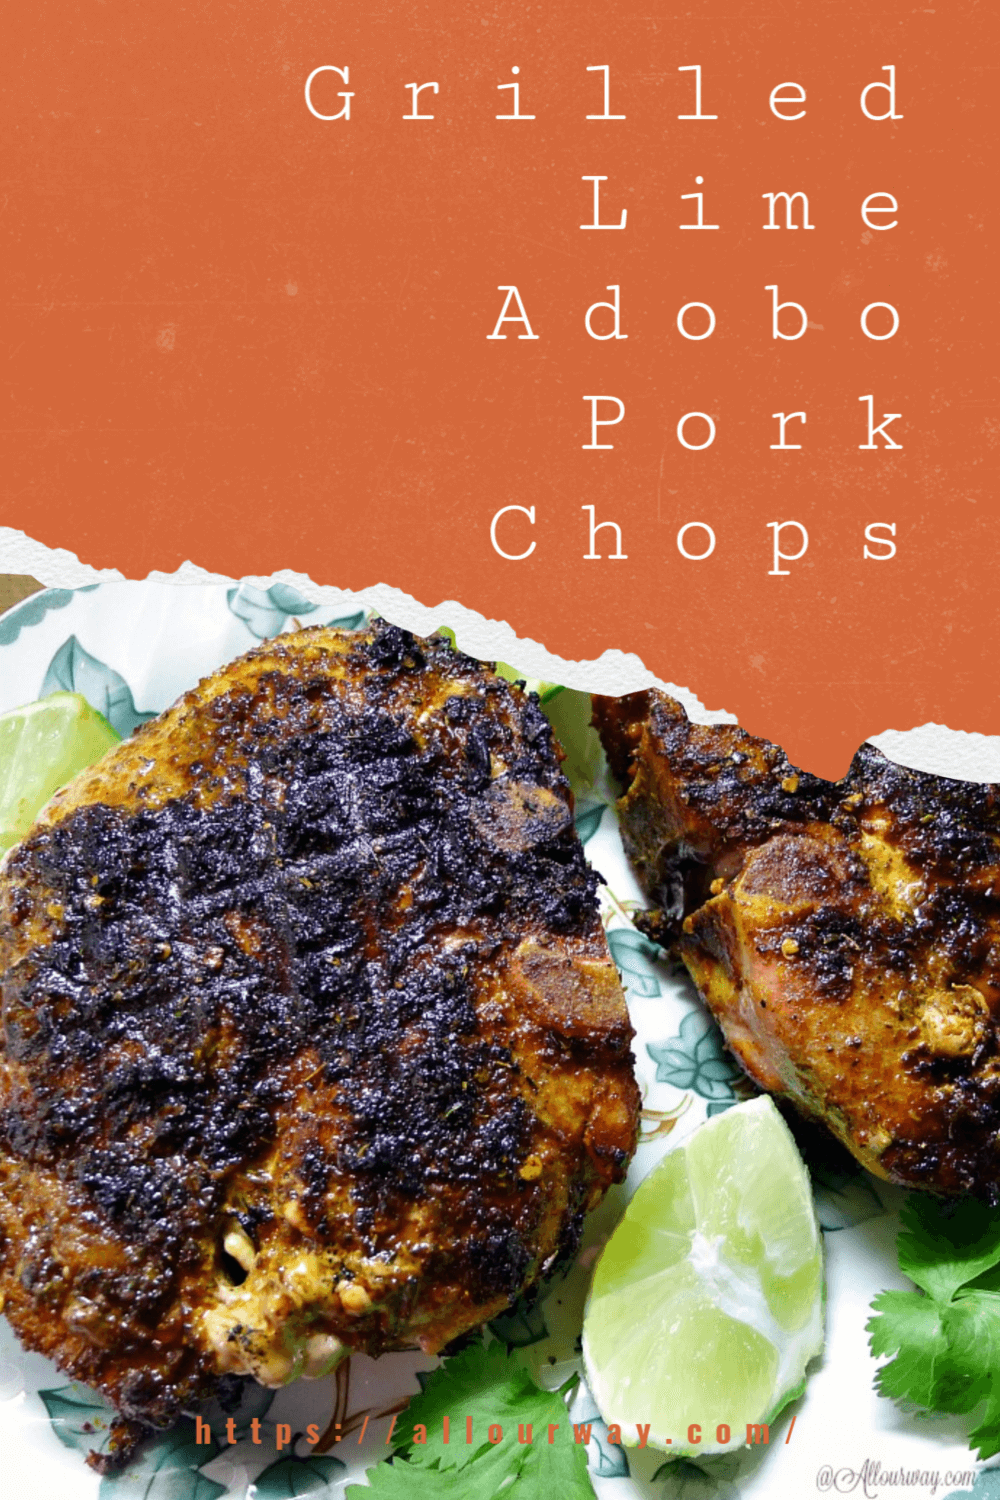 This delicious adobo paste uses the flavors of Mexico plus fresh lime zest to give the rub a lovely note with enough spice to waken your tastebuds We show you how to make perfect pork chops every time. Never worry about dry pork chops. They are flavorful and juicy a company worthy dinner. Enjoy outdoor grilled pork chops.